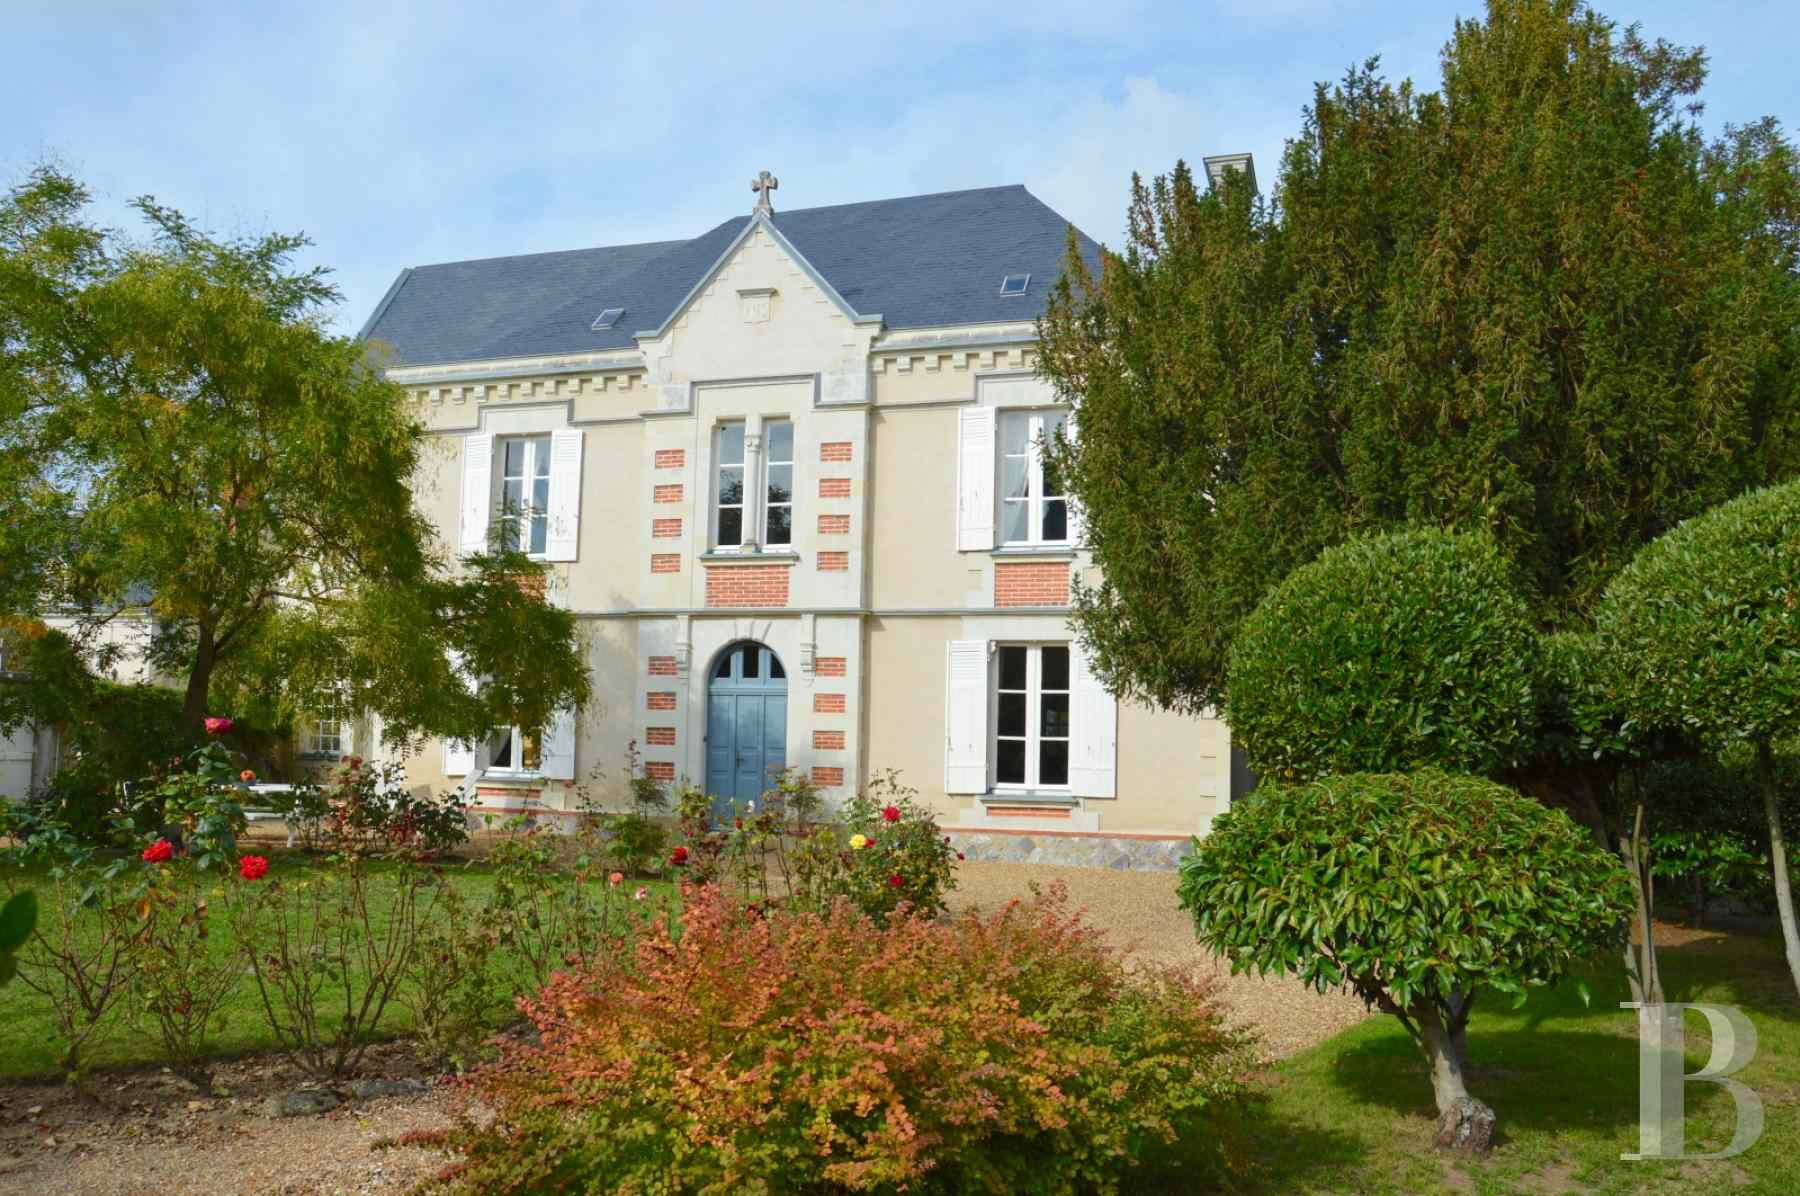 monastery for sale France pays de loire presbytery outbuildings - 1 zoom